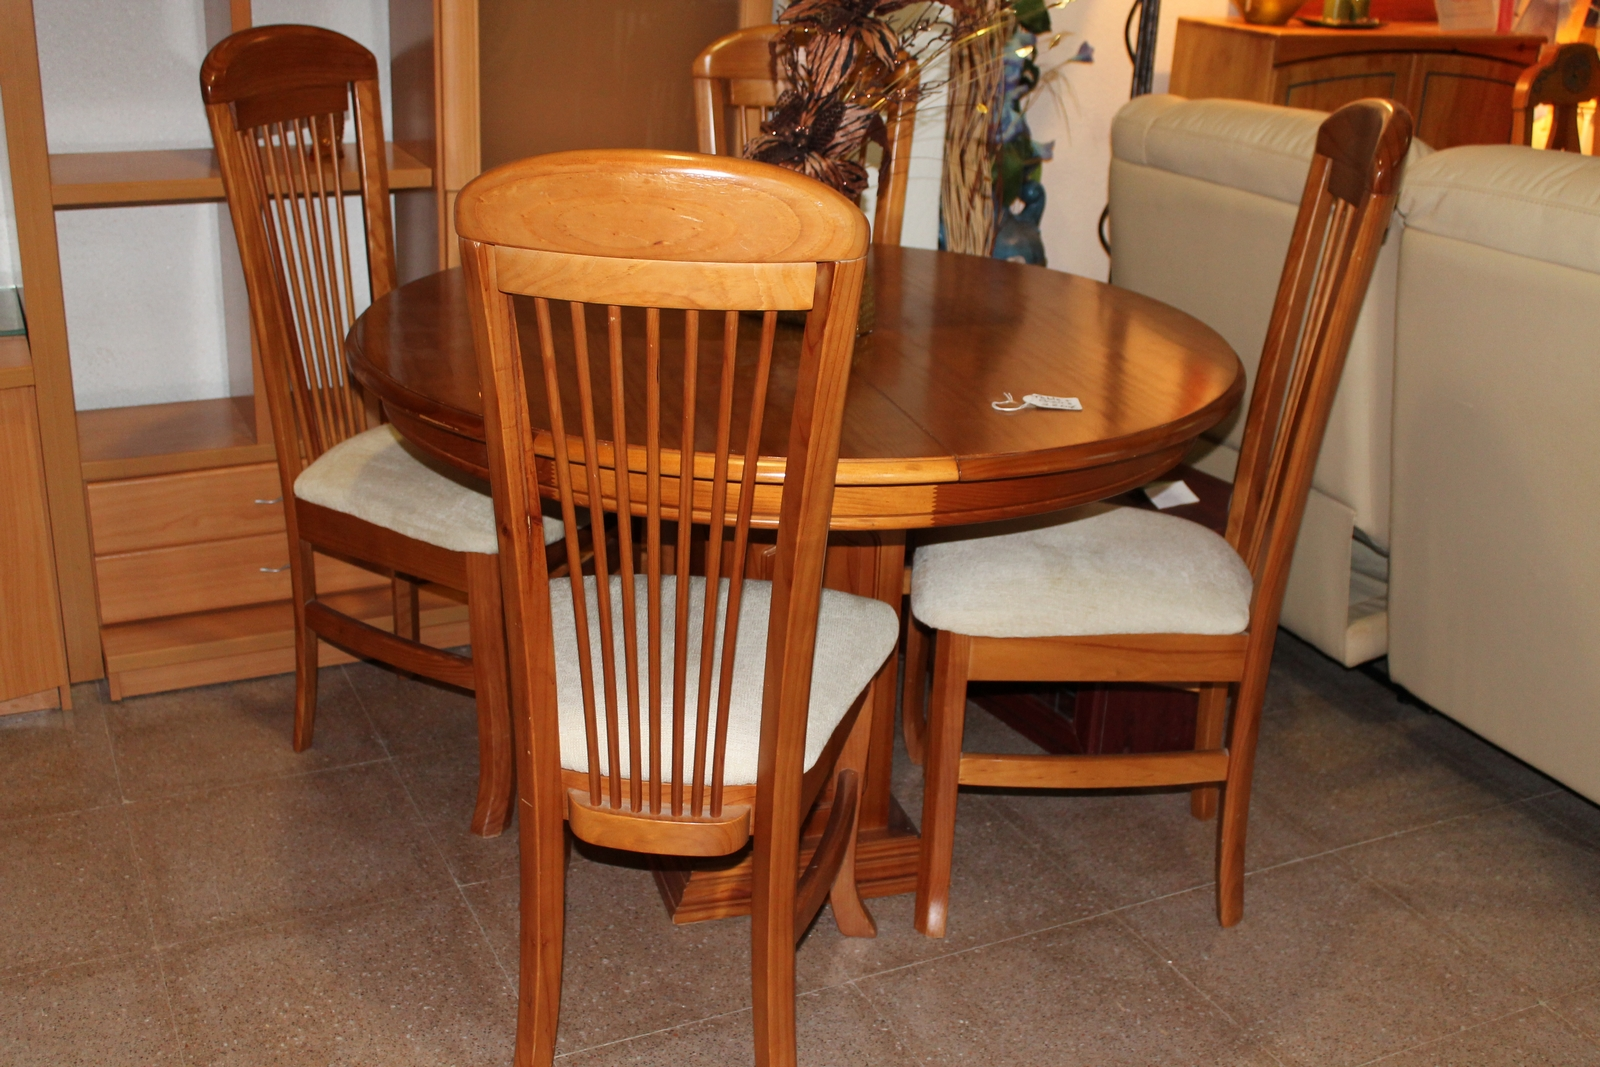 New you furniture second hand tables chairs for the